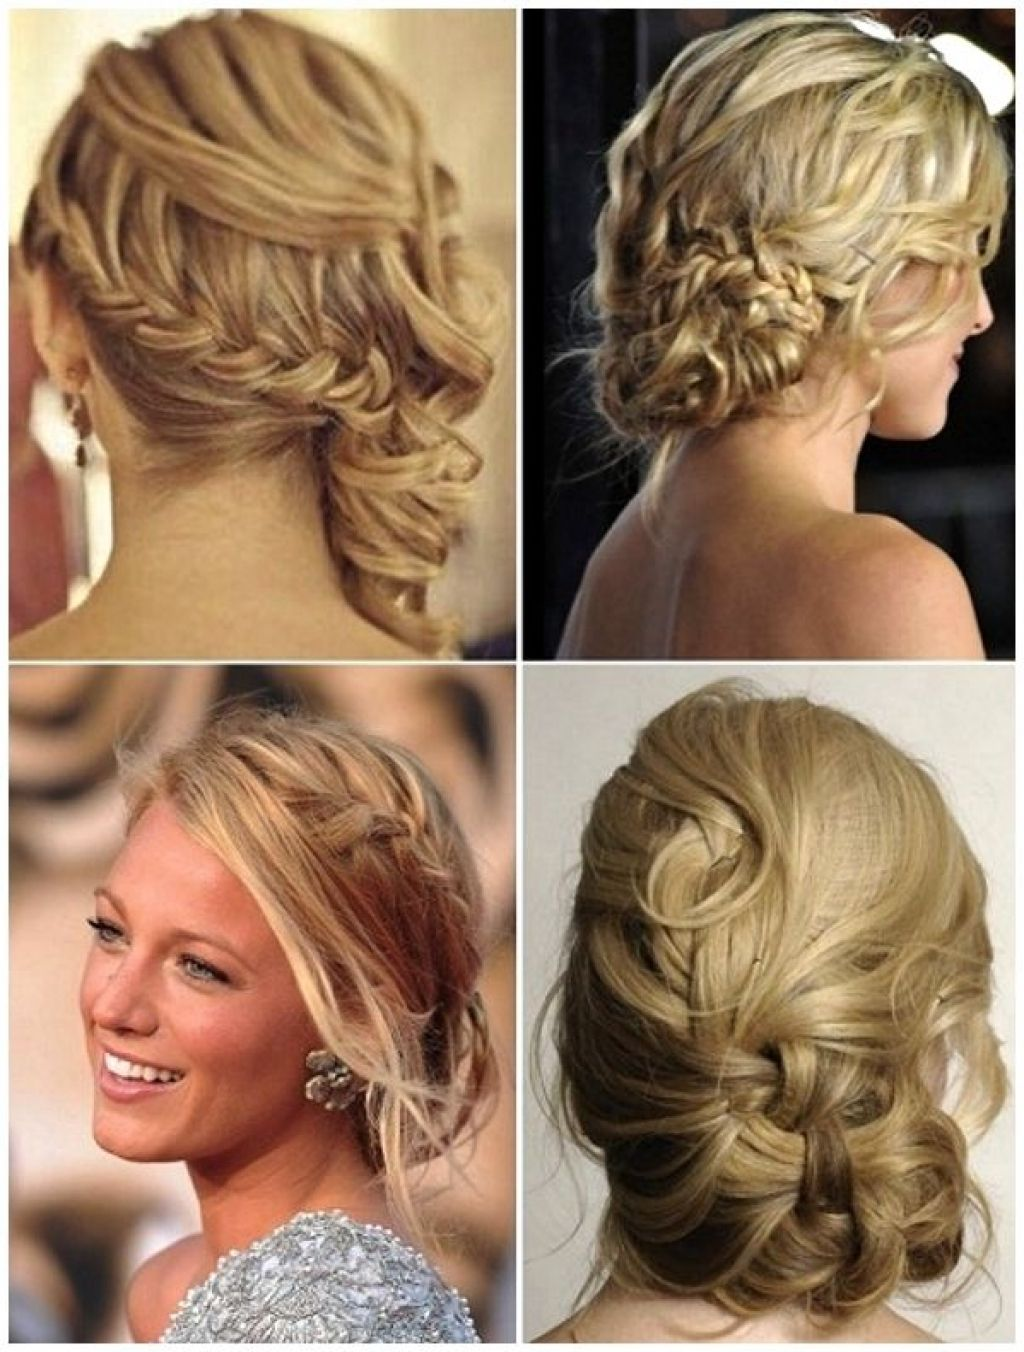 Hairstyle For Wedding Guest Brides Hairstyle Ideas Hairstyles For A Wedding Guest